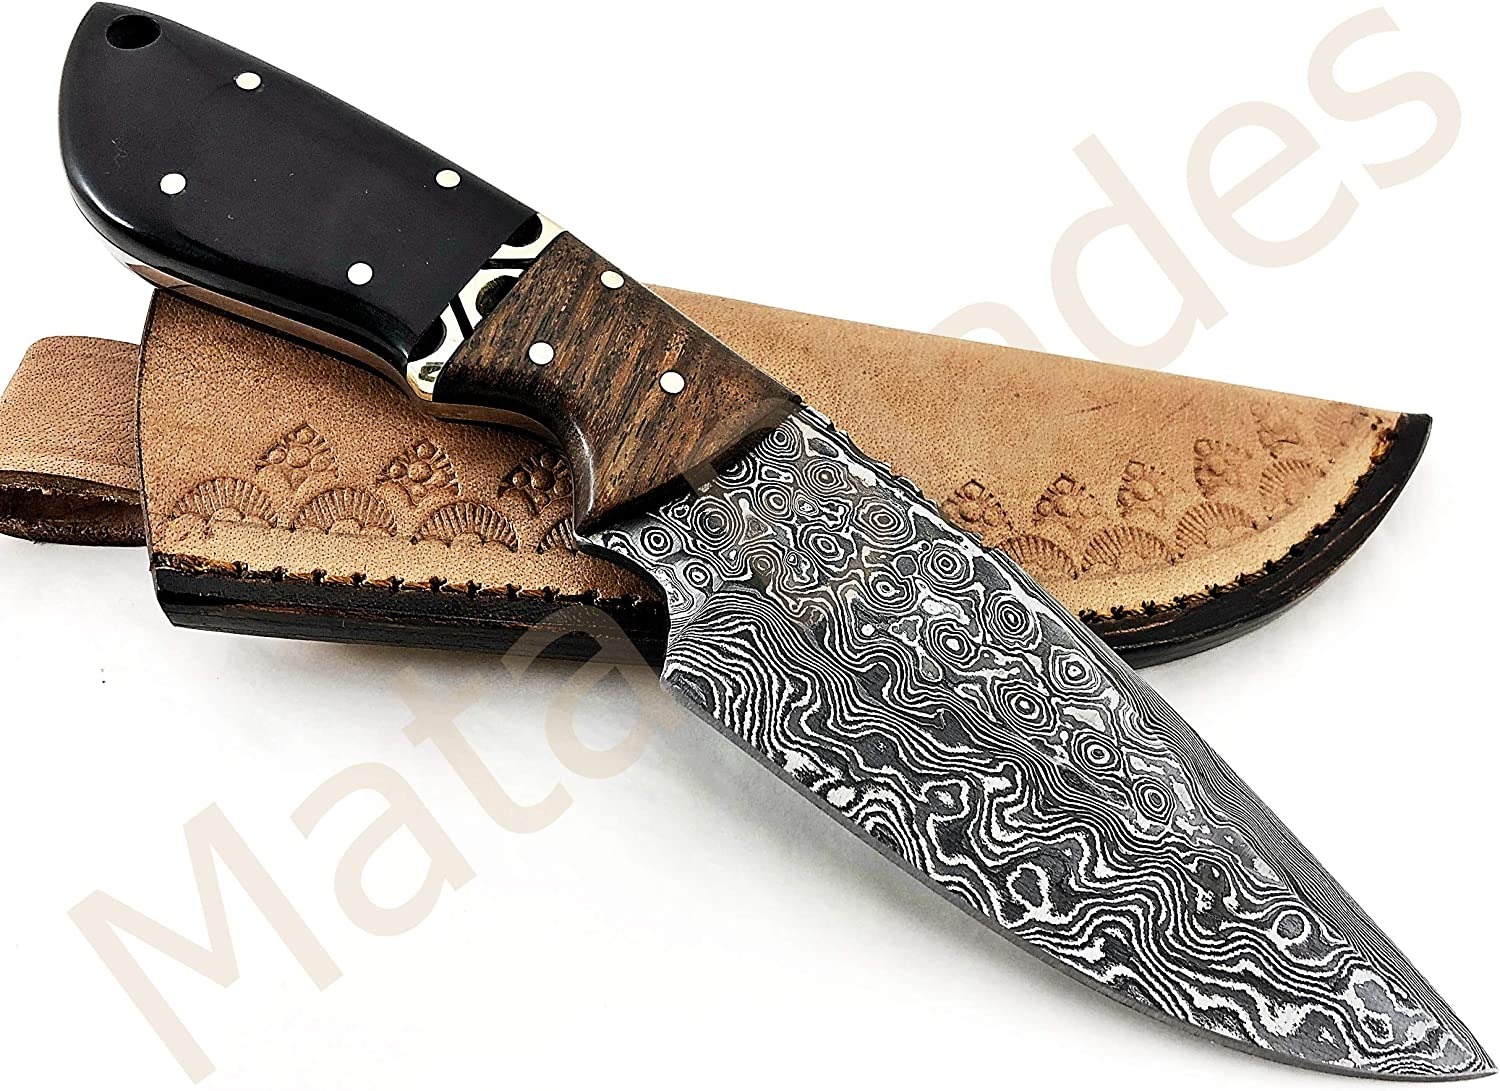 MATA BLADES 8.5 INCH Fixed Blade Black Horn and Rose Wood Custom Handmade Damascus Knife